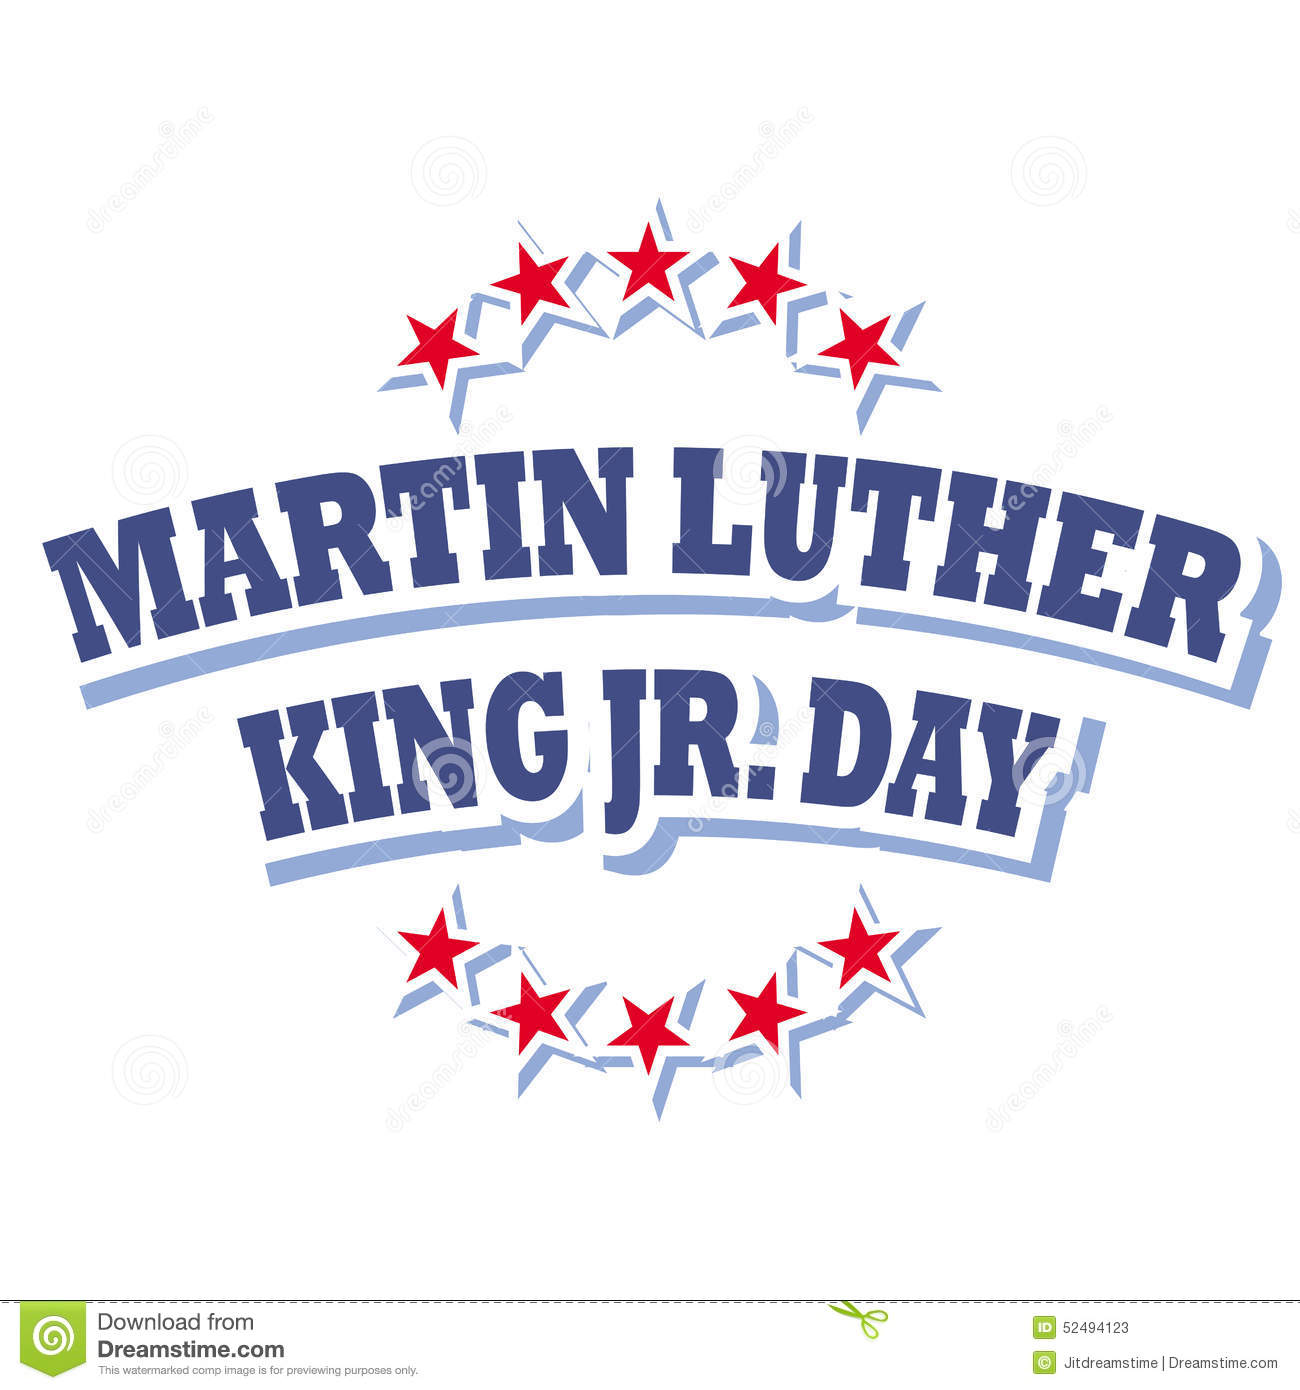 Martin luther king jr. day | Clipart Panda - Free Clipart Images1300 x 1390